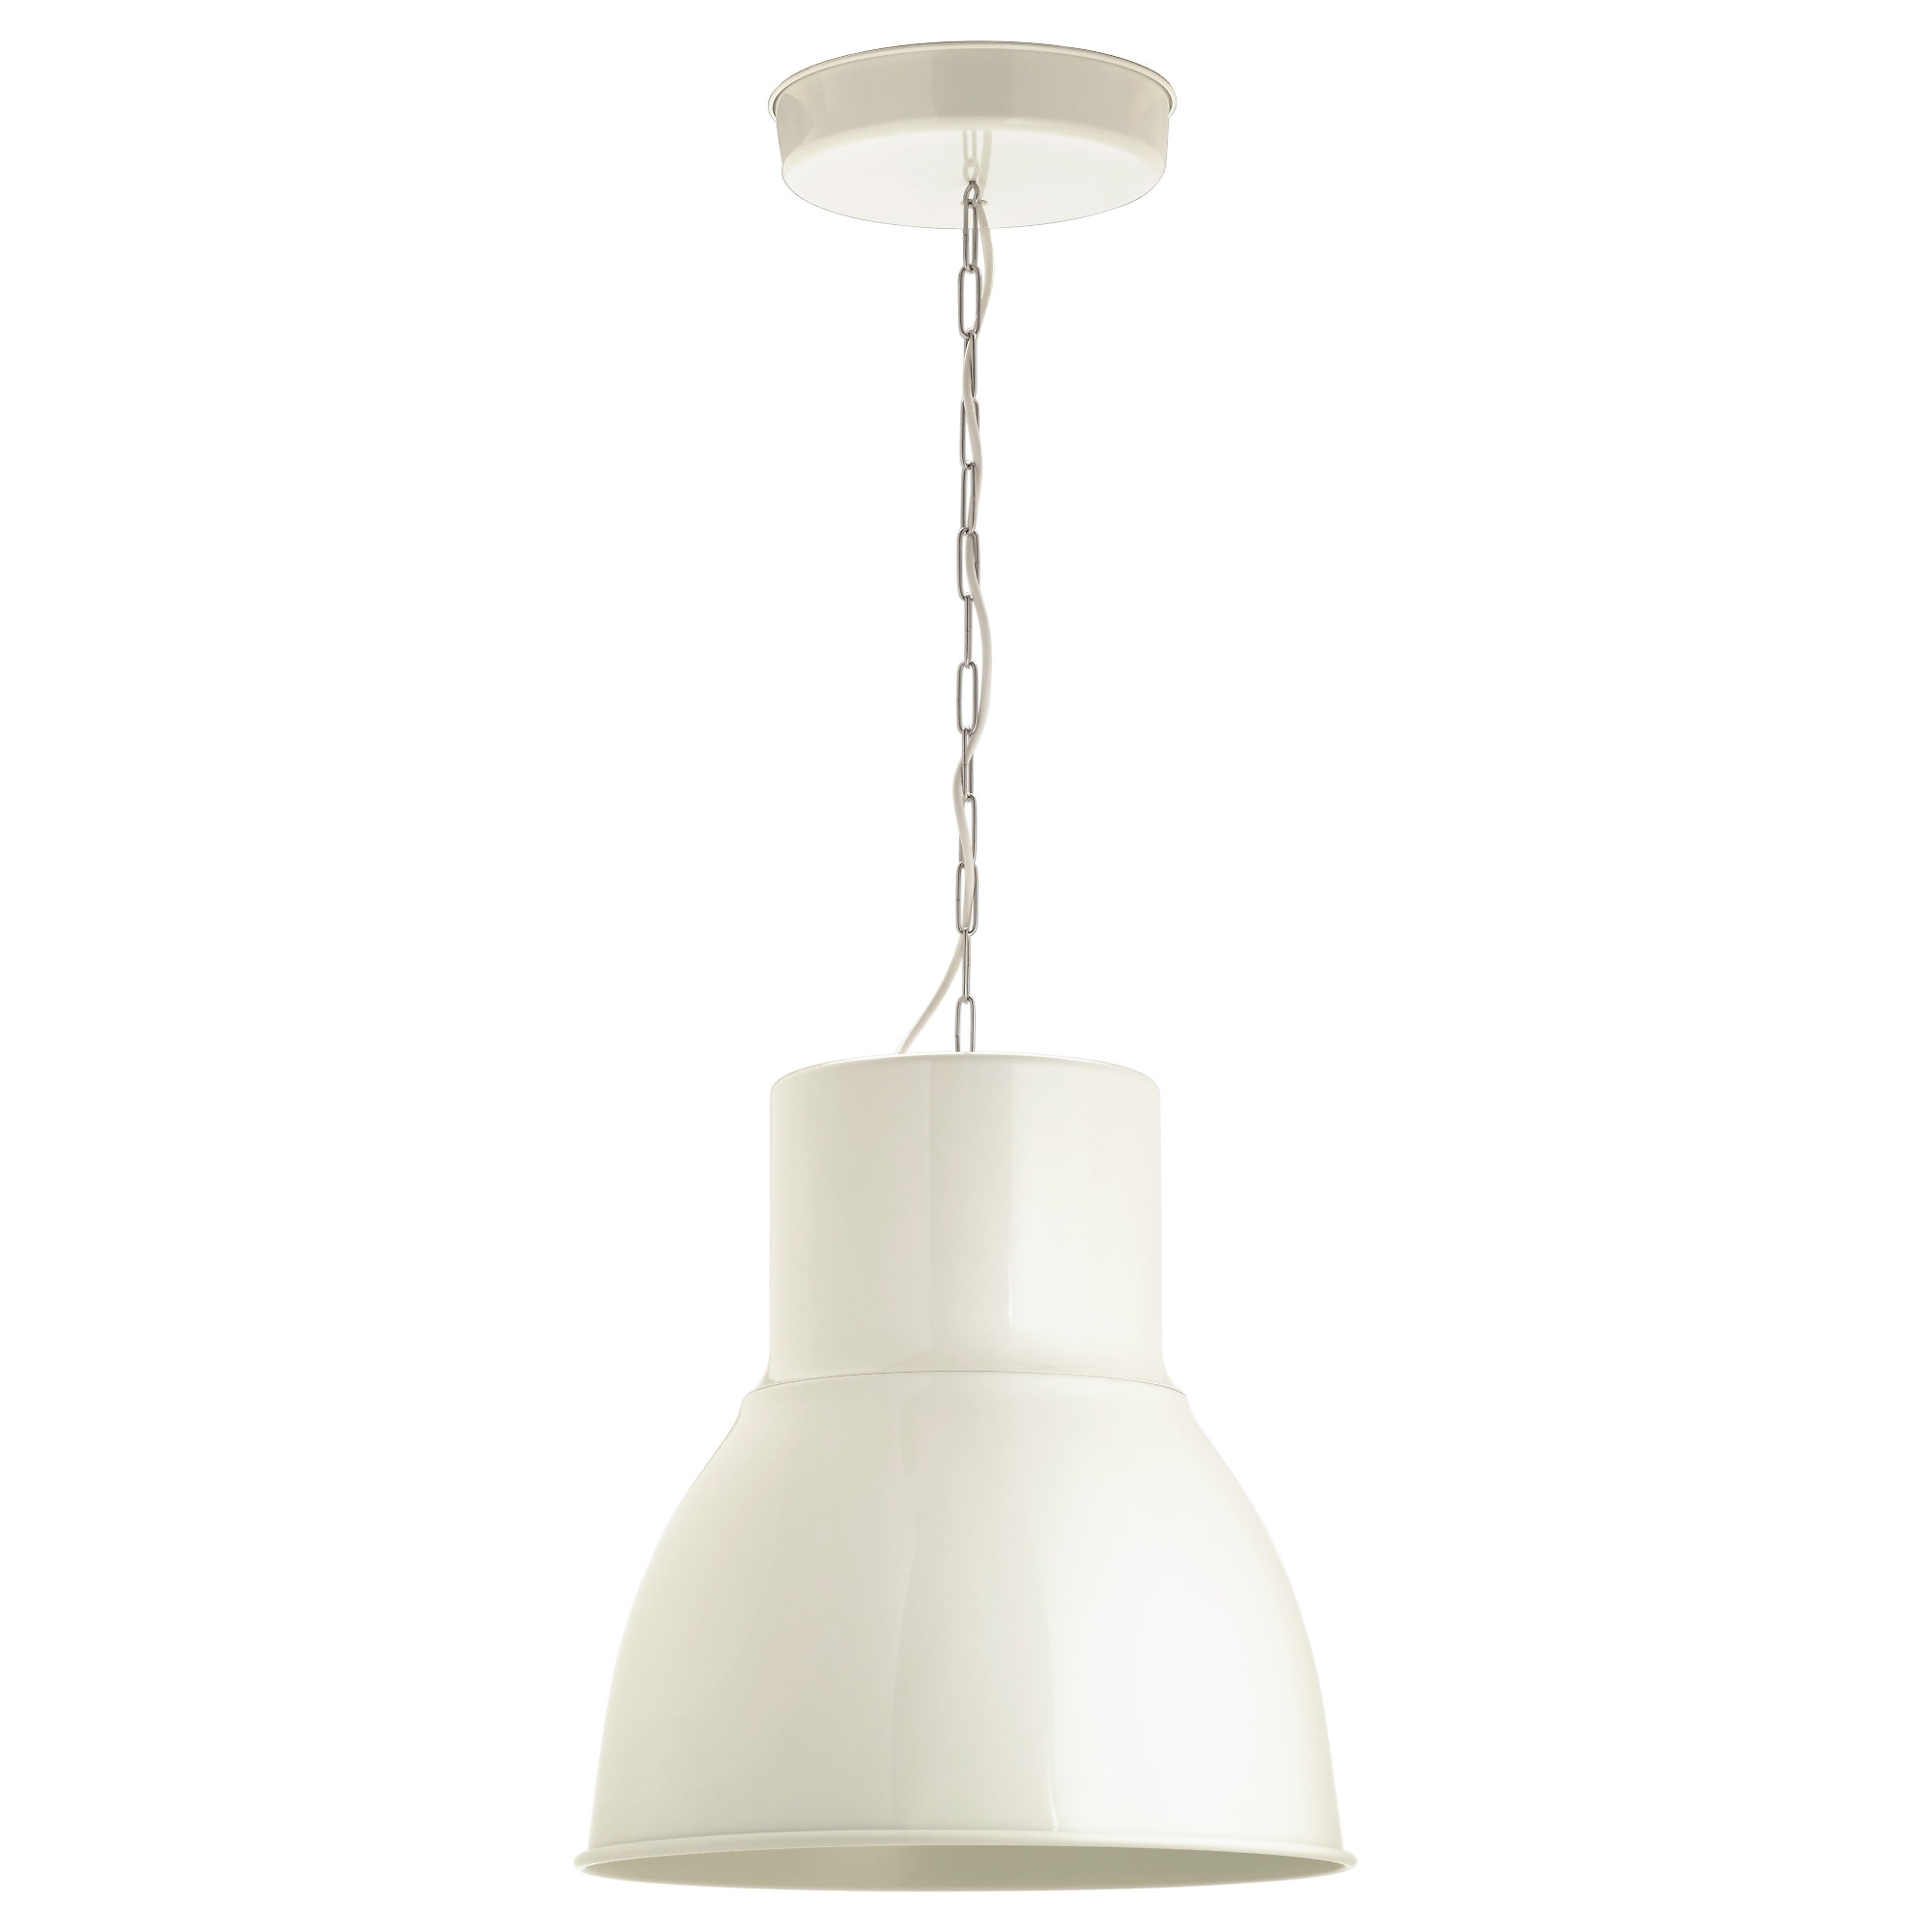 Most Recent Light : Hektar Pendant Lamp White Ceiling Light Cm Ikea Art String Regarding Ikea Outdoor Hanging Lights (View 5 of 20)